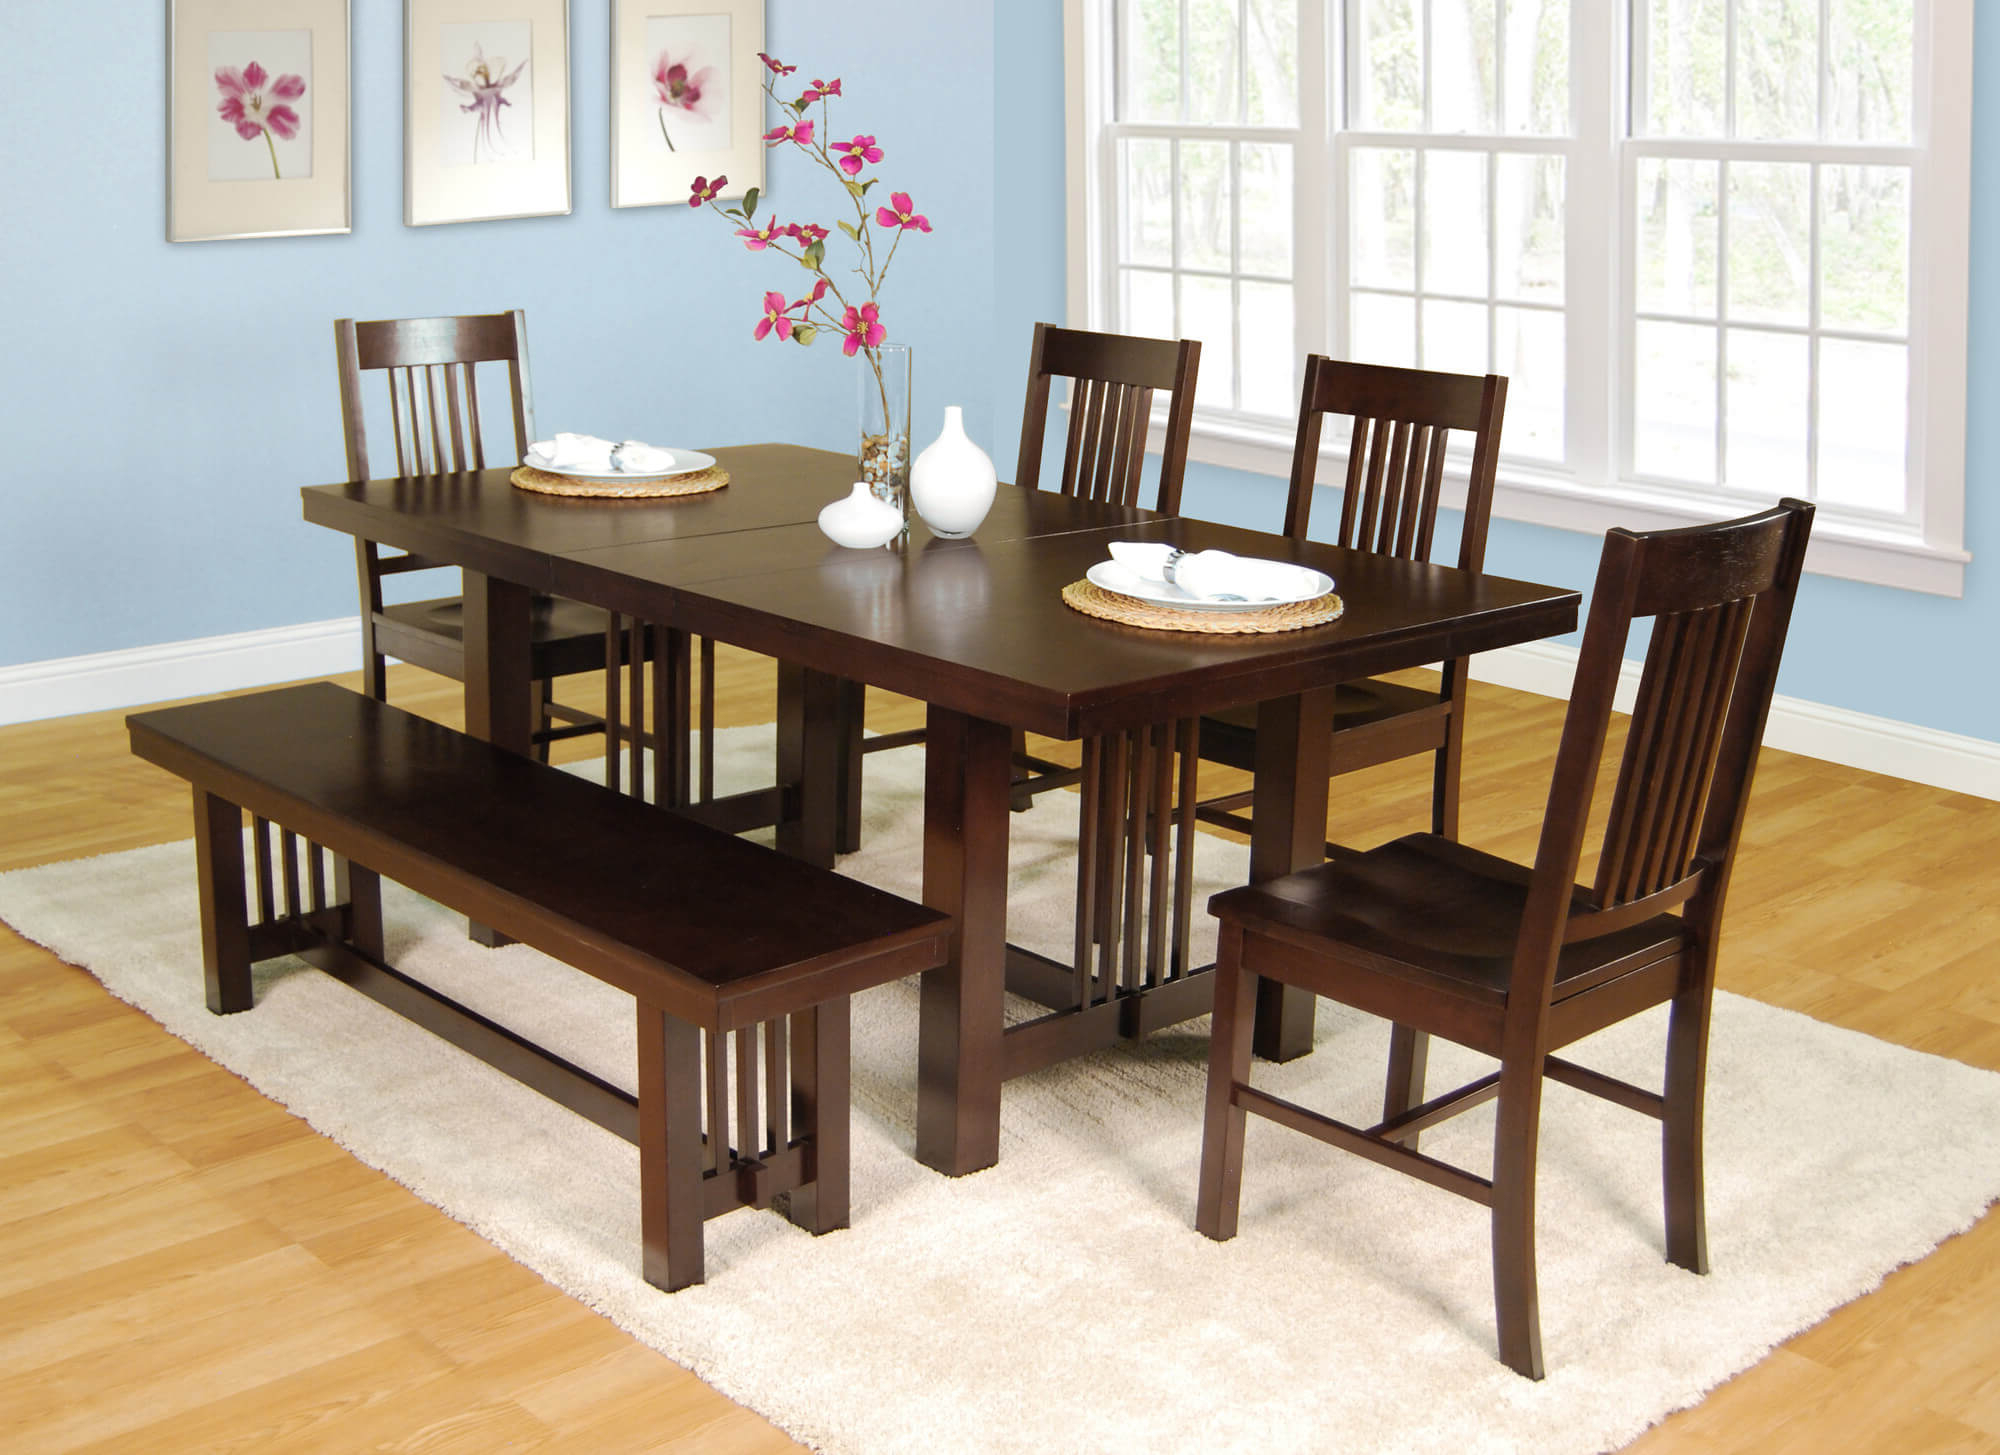 Most Popular 10 Modern Walnut Finish Dining Room Table Set Furniture Intended For 8 Seater Wood Contemporary Dining Tables With Extension Leaf (View 13 of 25)